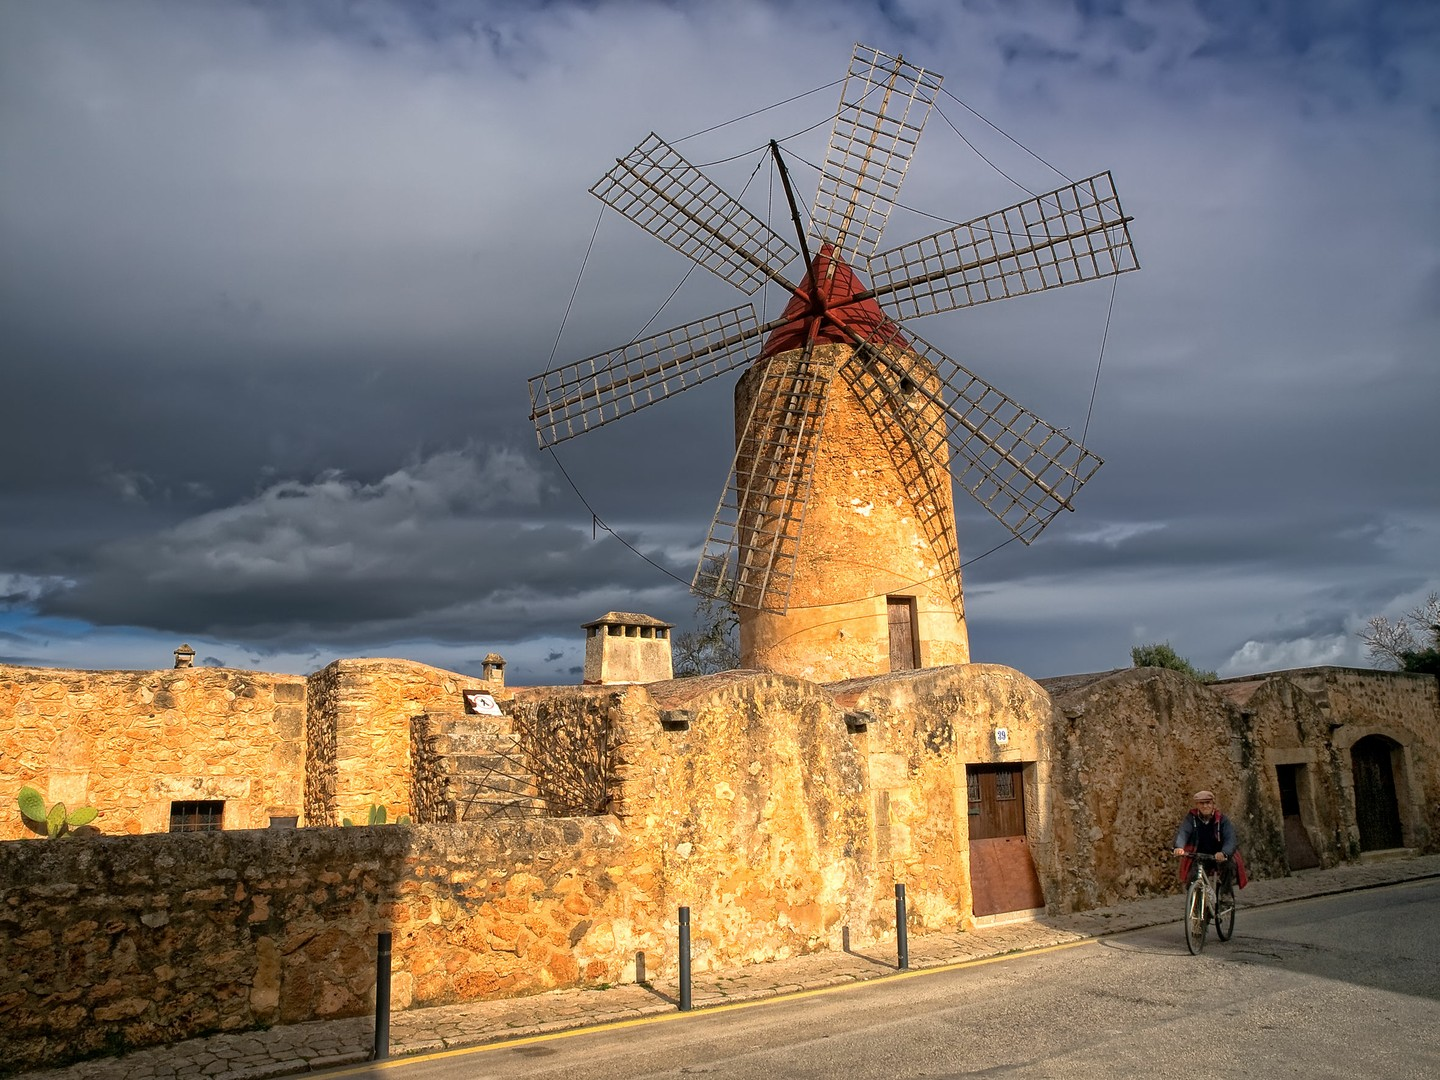 Self drive Tour: Charming Villages, Legends and Windmills